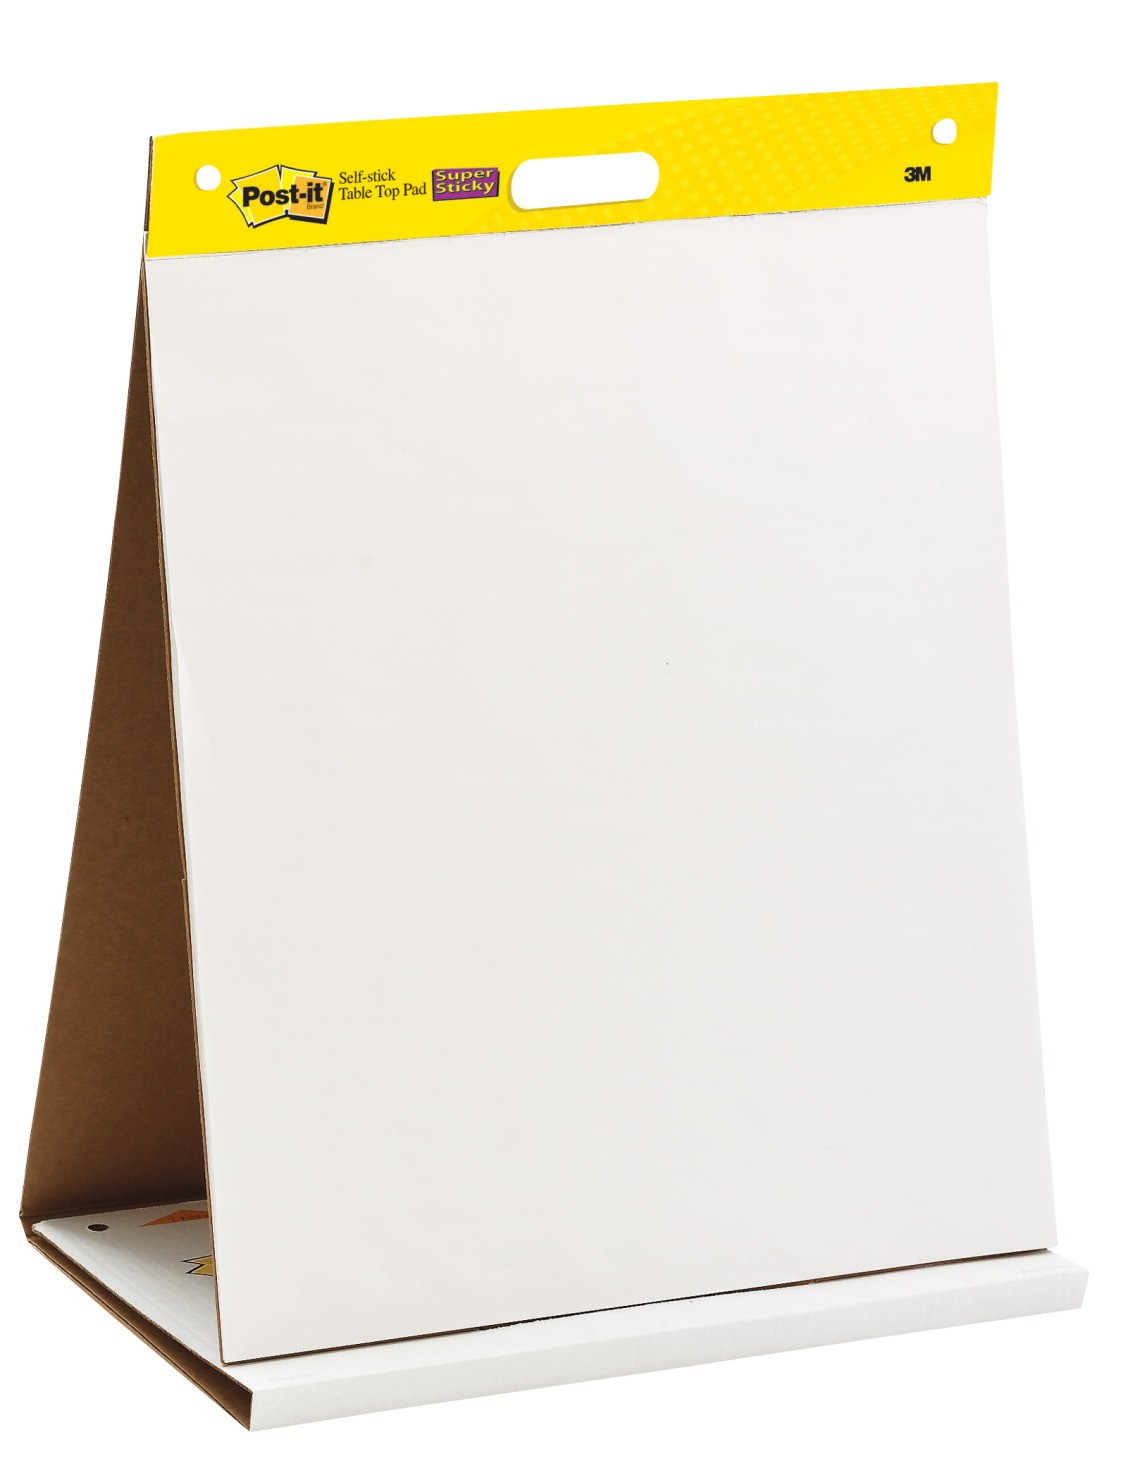 20 X 23 Post-It Easel Pad, Table Top, Unruled, White - 20 Sheets/Pad